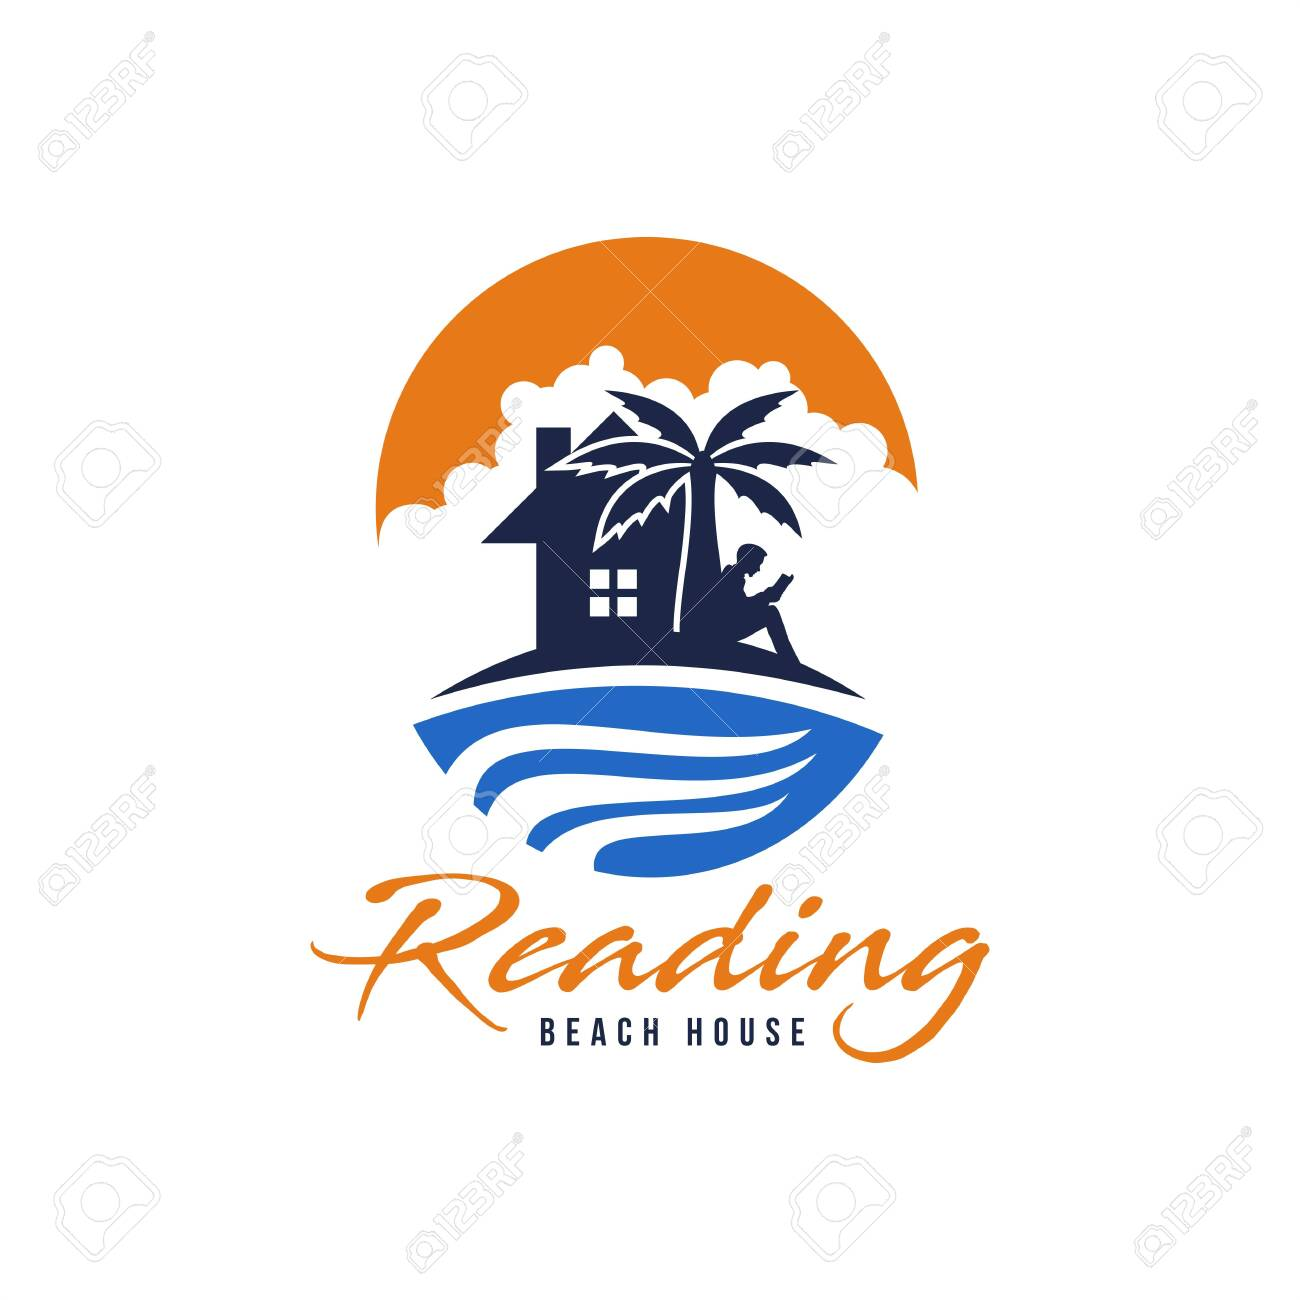 Reading Beach House Logo Vector Amazing Design For Your Company Royalty Free Cliparts Vectors And Stock Illustration Image 121179265